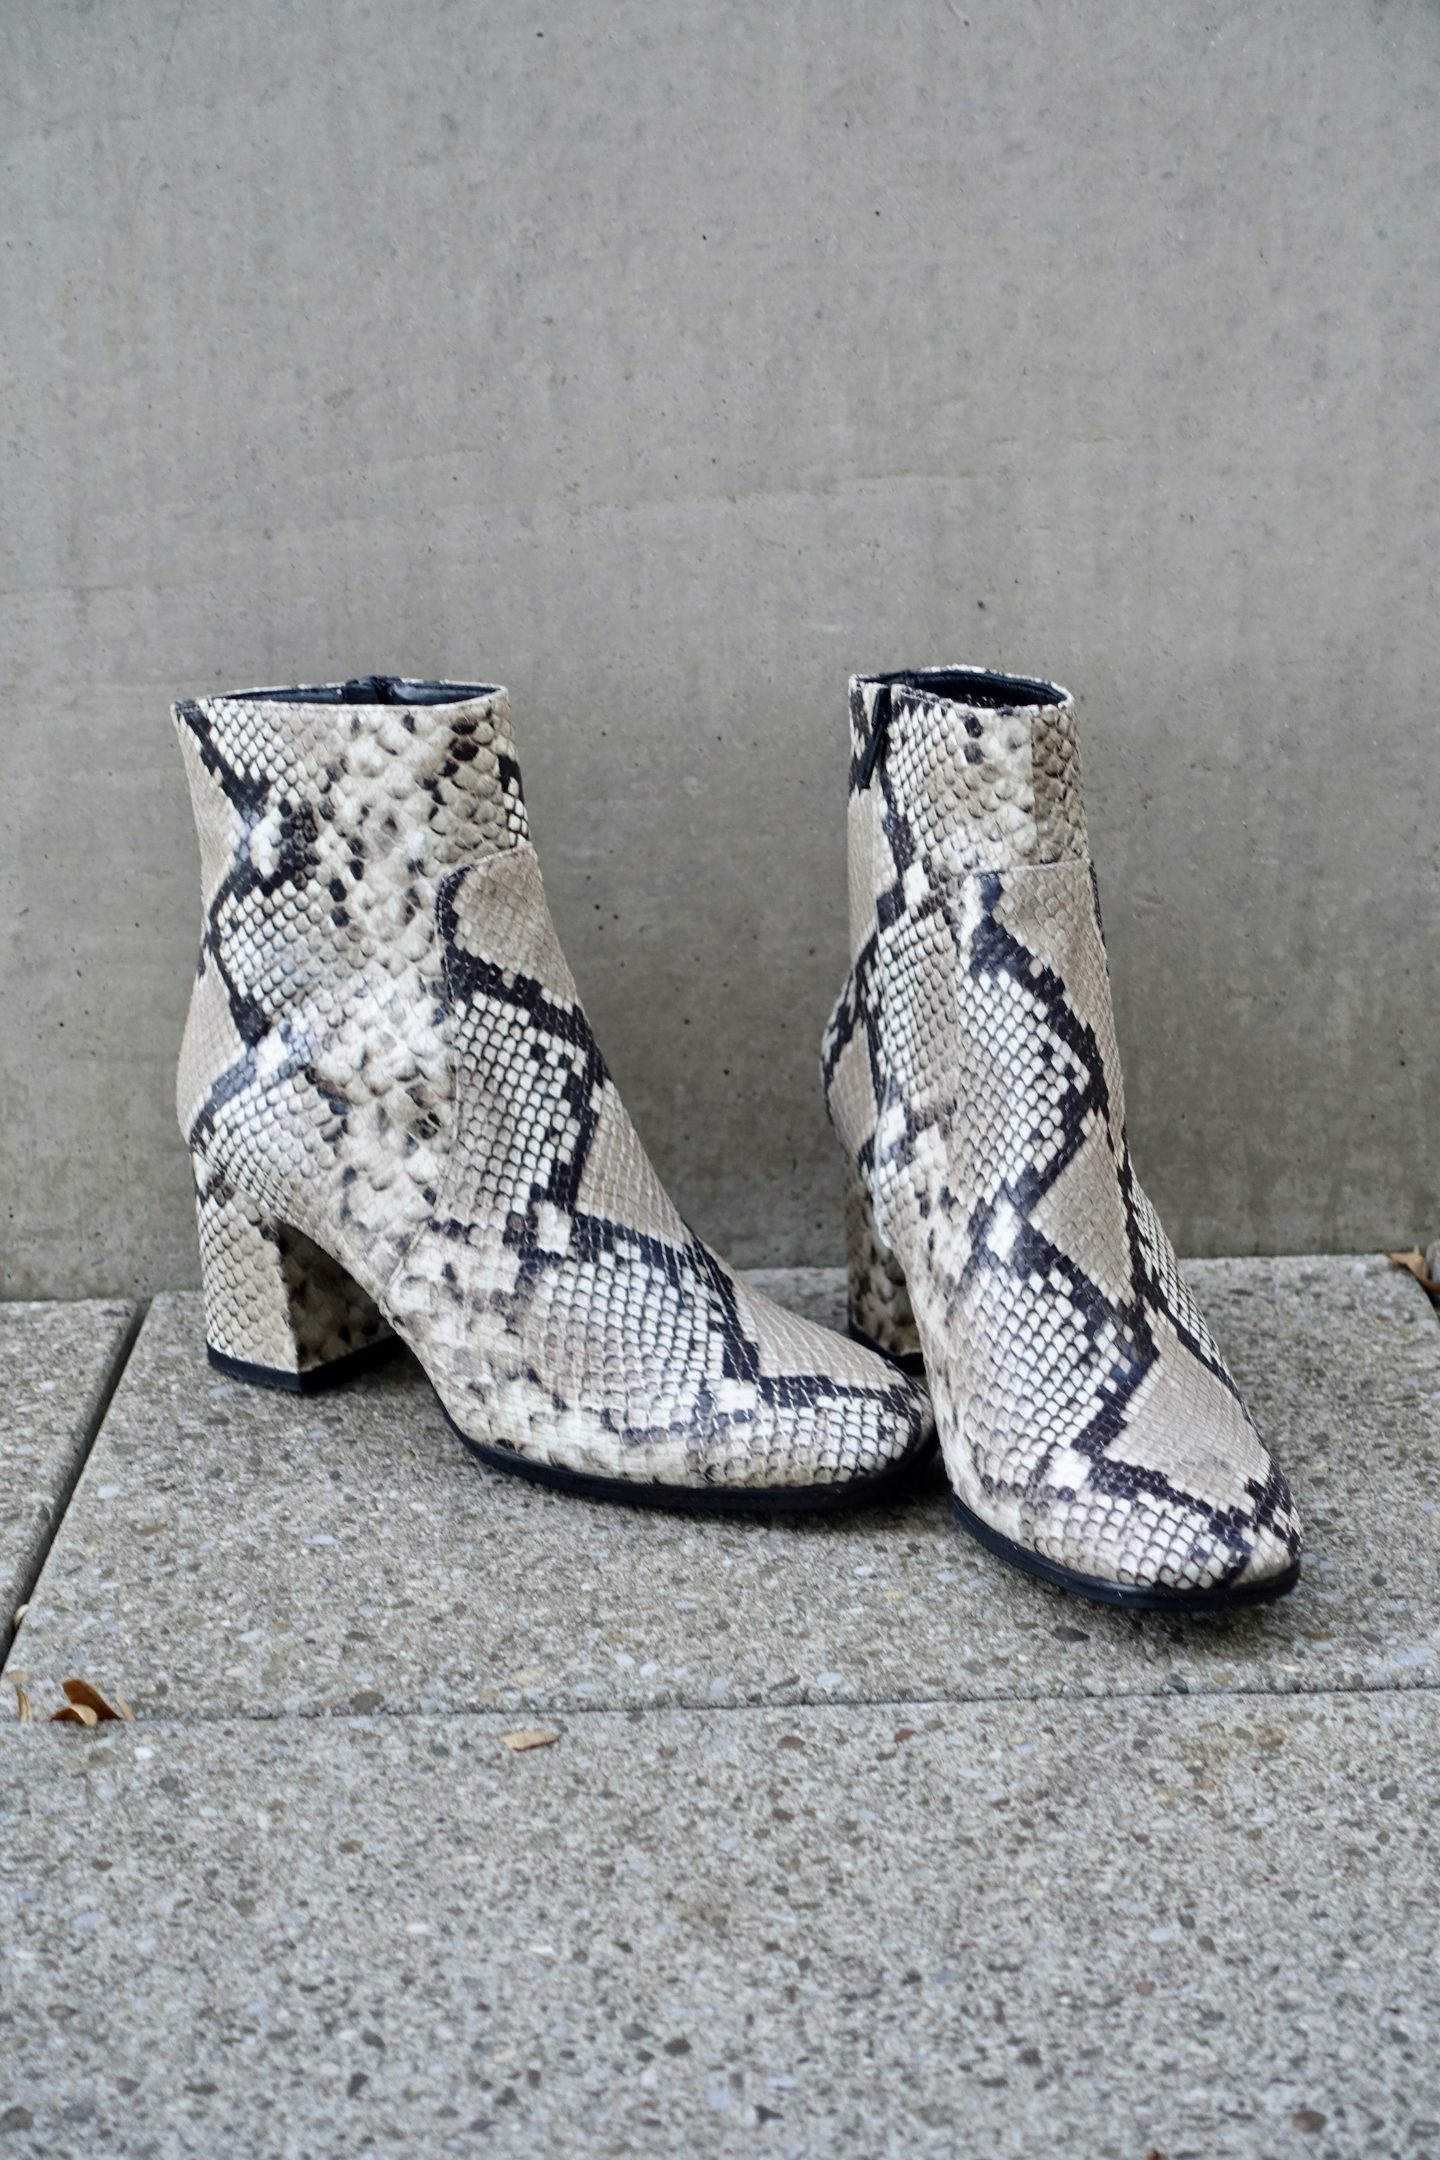 Snakeskin Print Boots Trend 2019